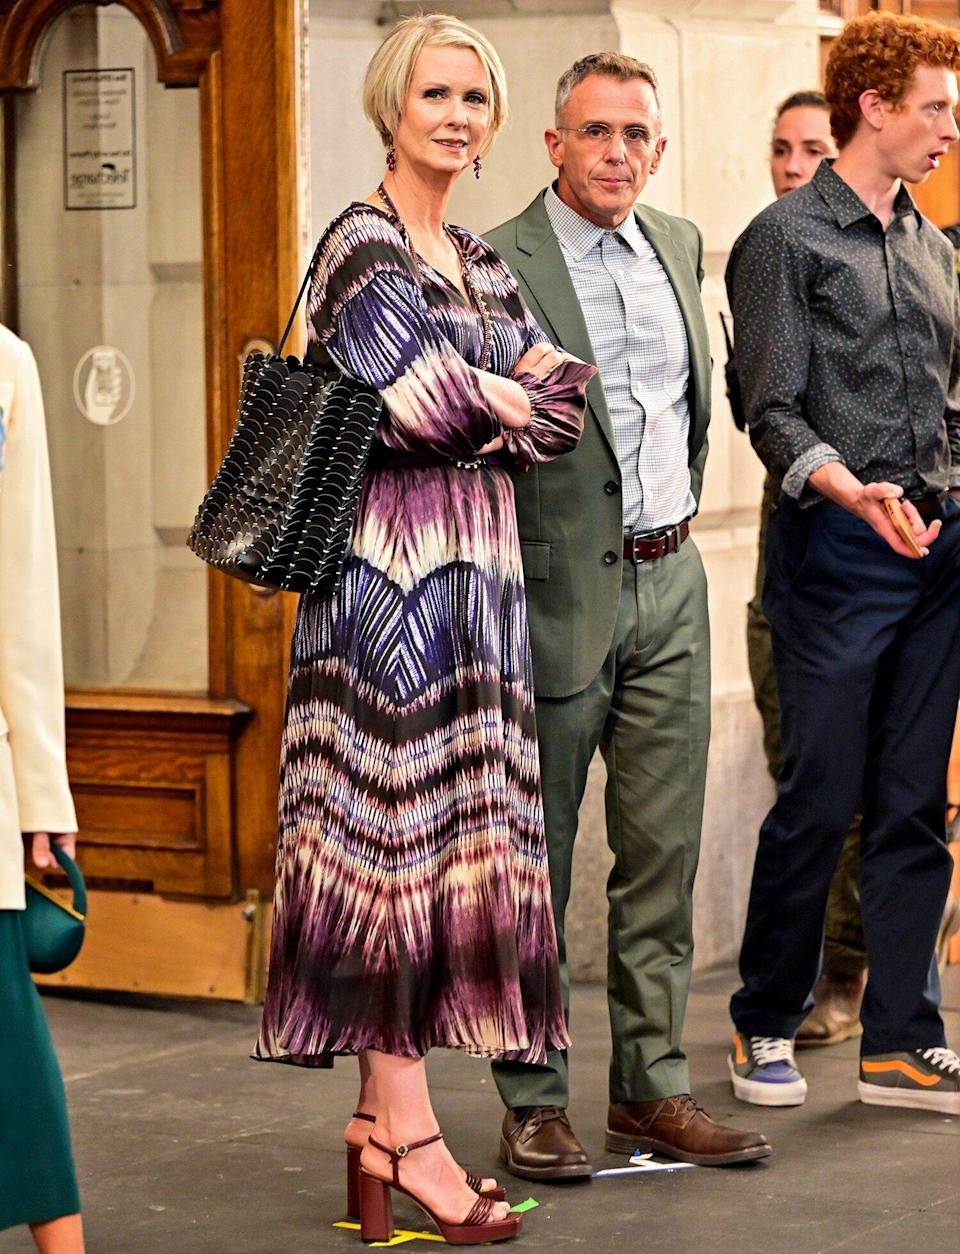 """Cynthia Nixon and David Eigenberg seen on the set of """"And Just Like That..."""" the follow up series to """"Sex and the City"""" at the Lyceum Theater on July 24, 2021 in New York City."""